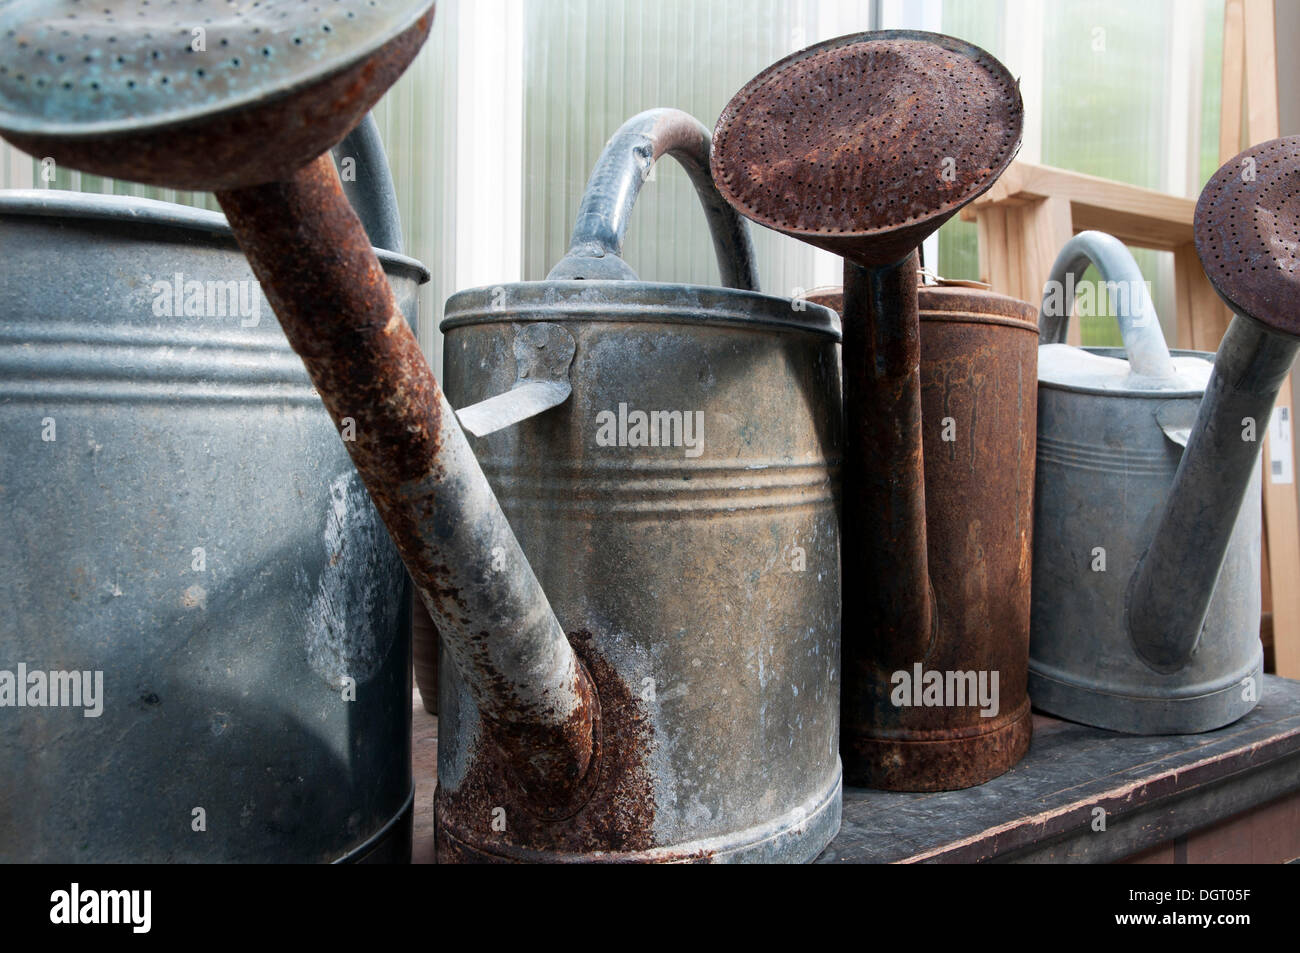 Watering cans made of galvanized sheet metal, rusty - Stock Image